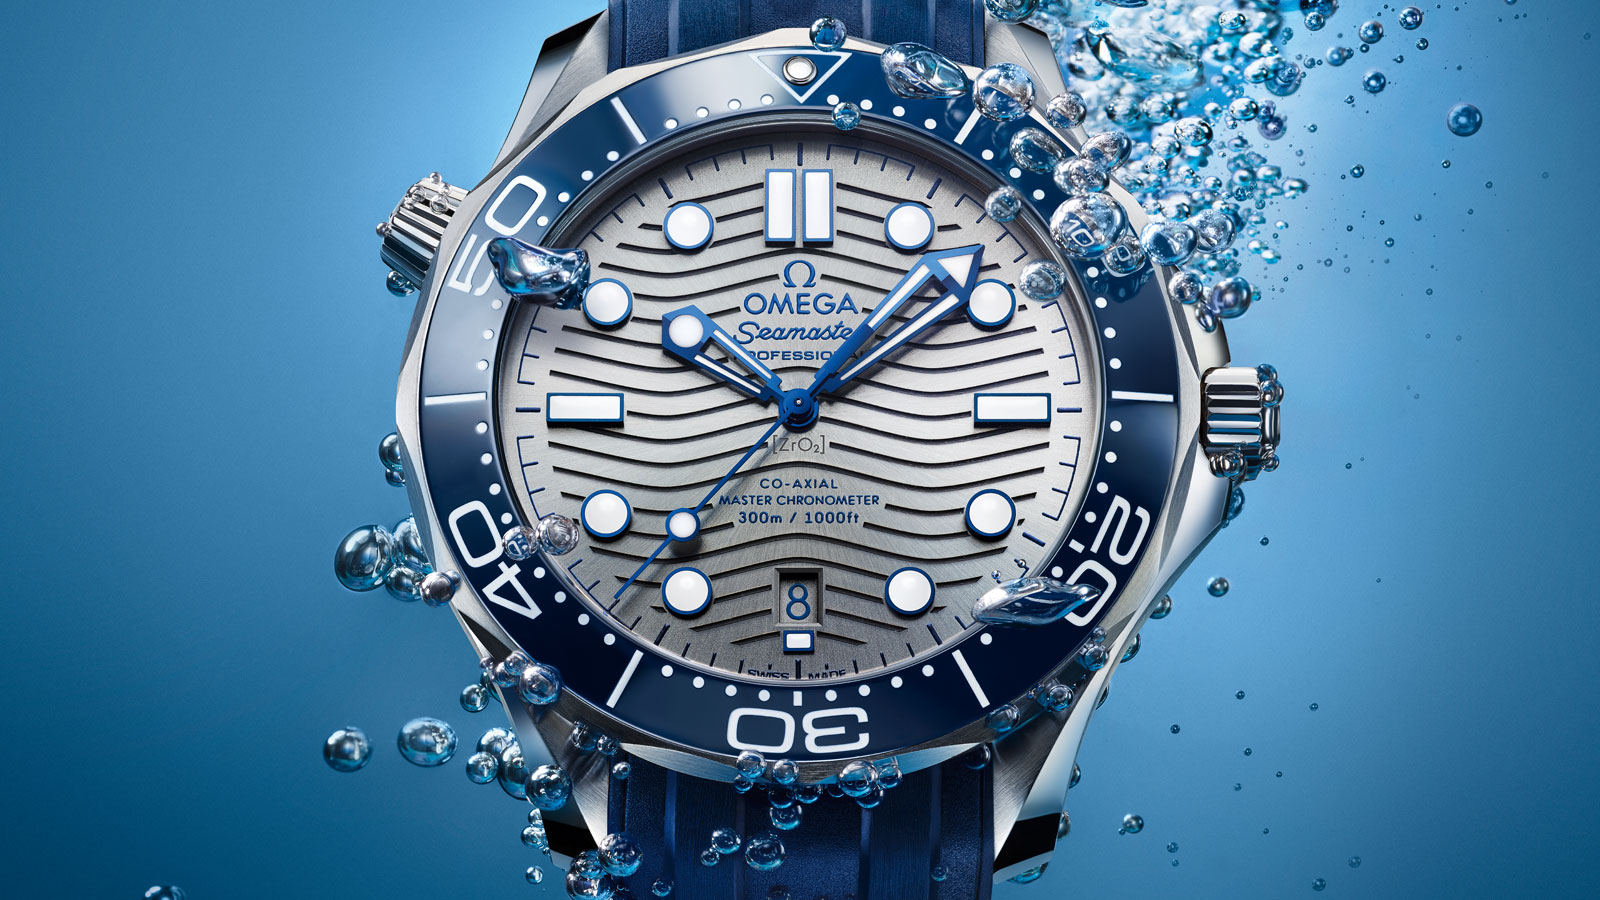 Seamaster Diver 300 M Diver 300M Omega Co‑Axial Master Chronometer 42 mm Watch - 210.32.42.20.06.001